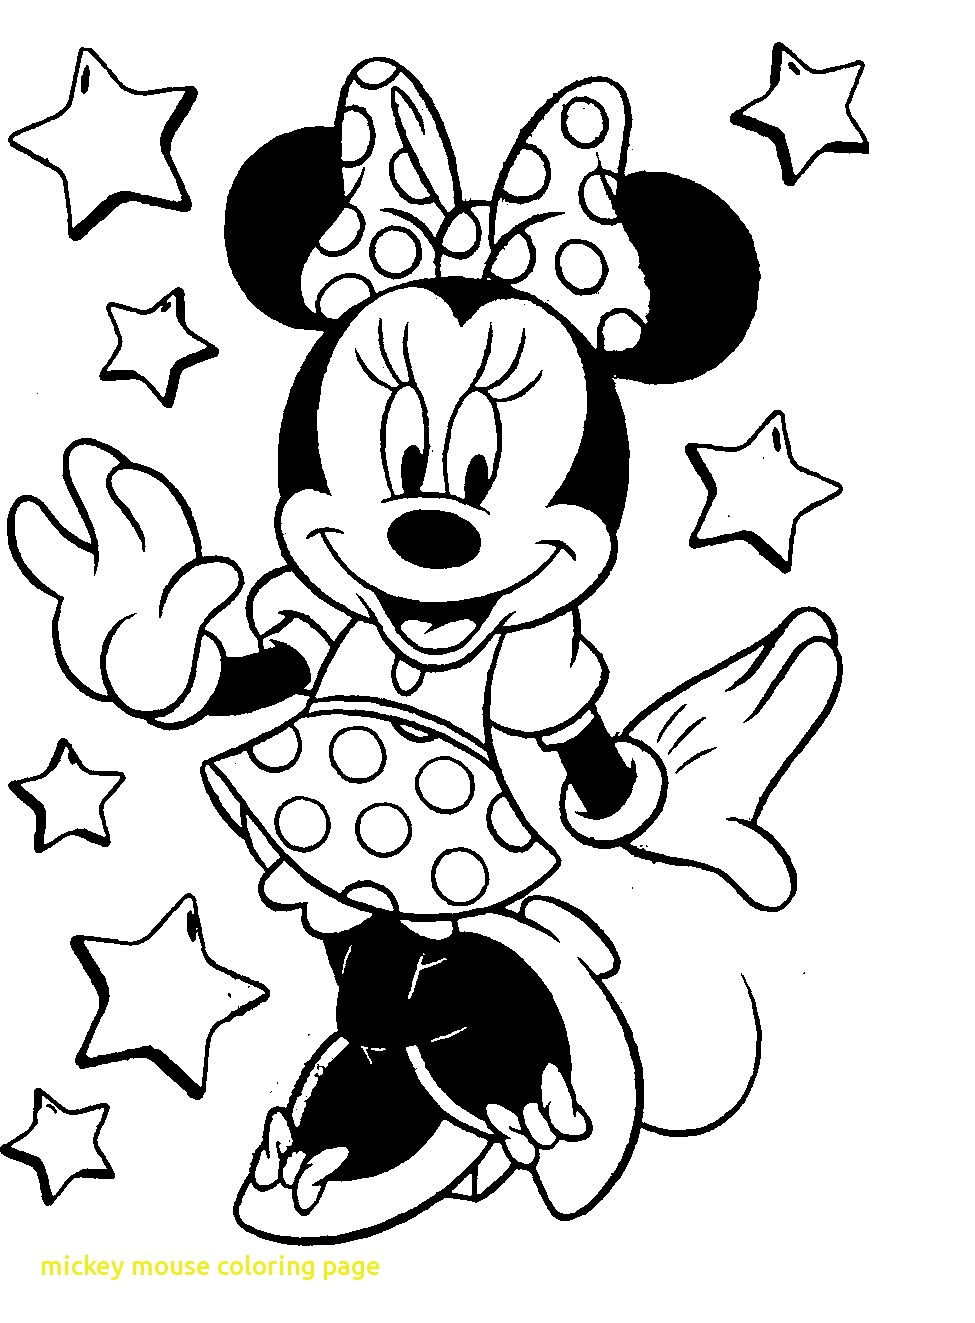 Mickey Mouse Step By Step Drawing at GetDrawings.com | Free for ...